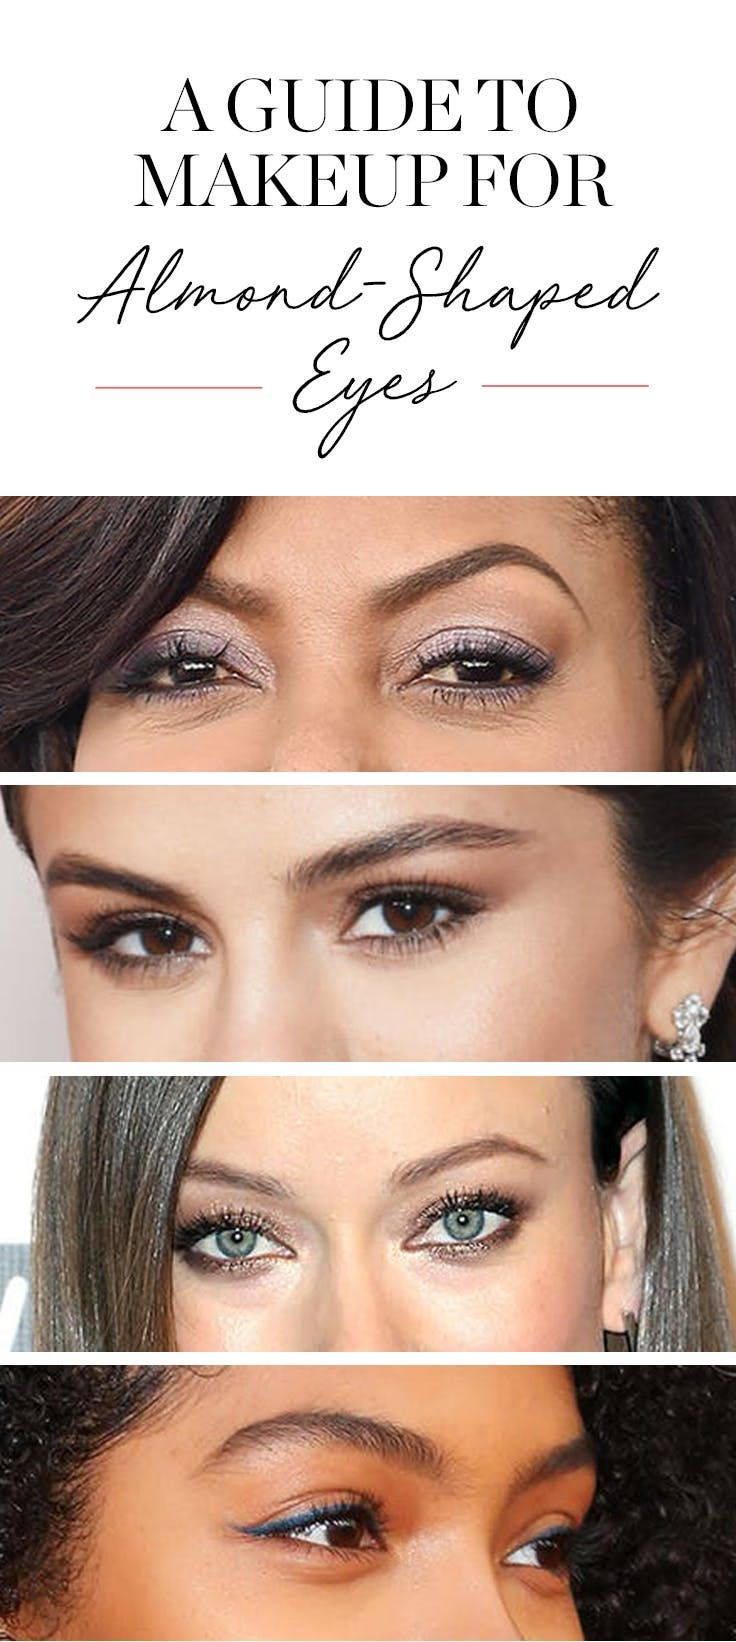 A Definitive Guide To Makeup For Almondshaped Eyes